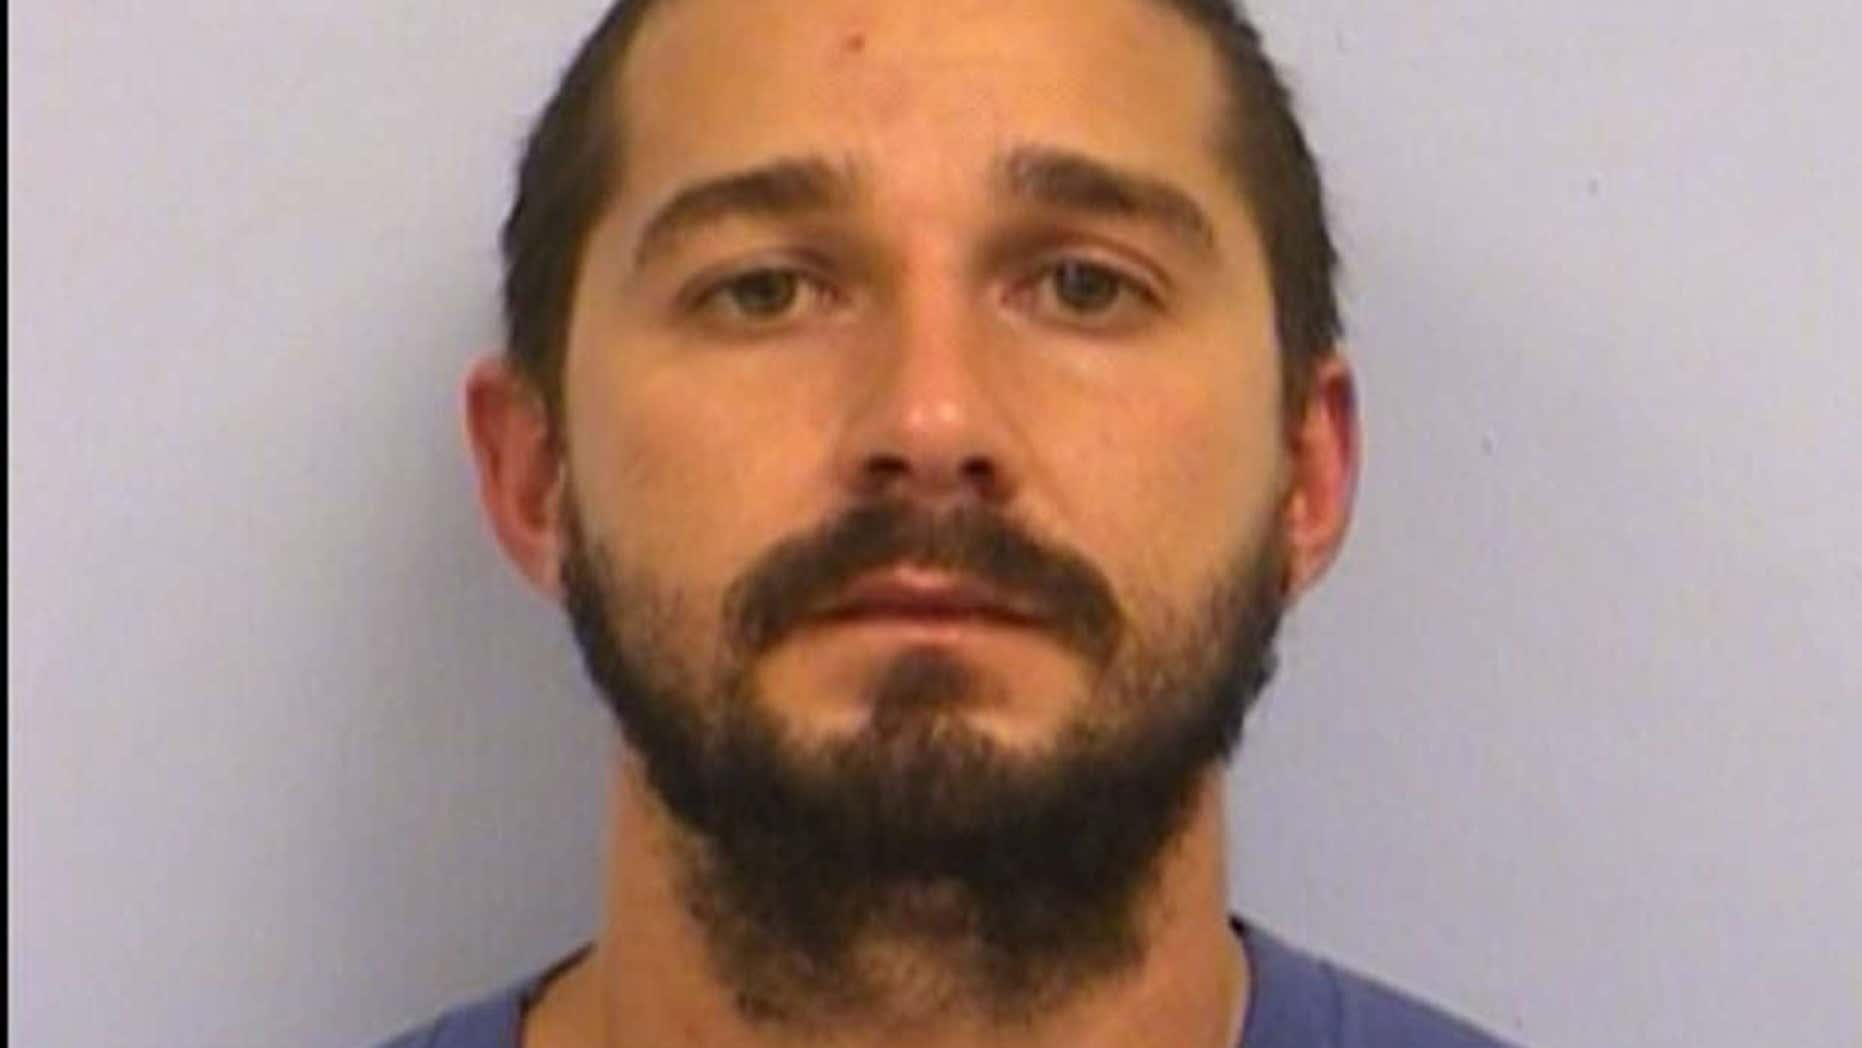 Oct. 9, 2015: Actor Shia LaBeouf was arrested by the Austin Police Department for public intoxication.